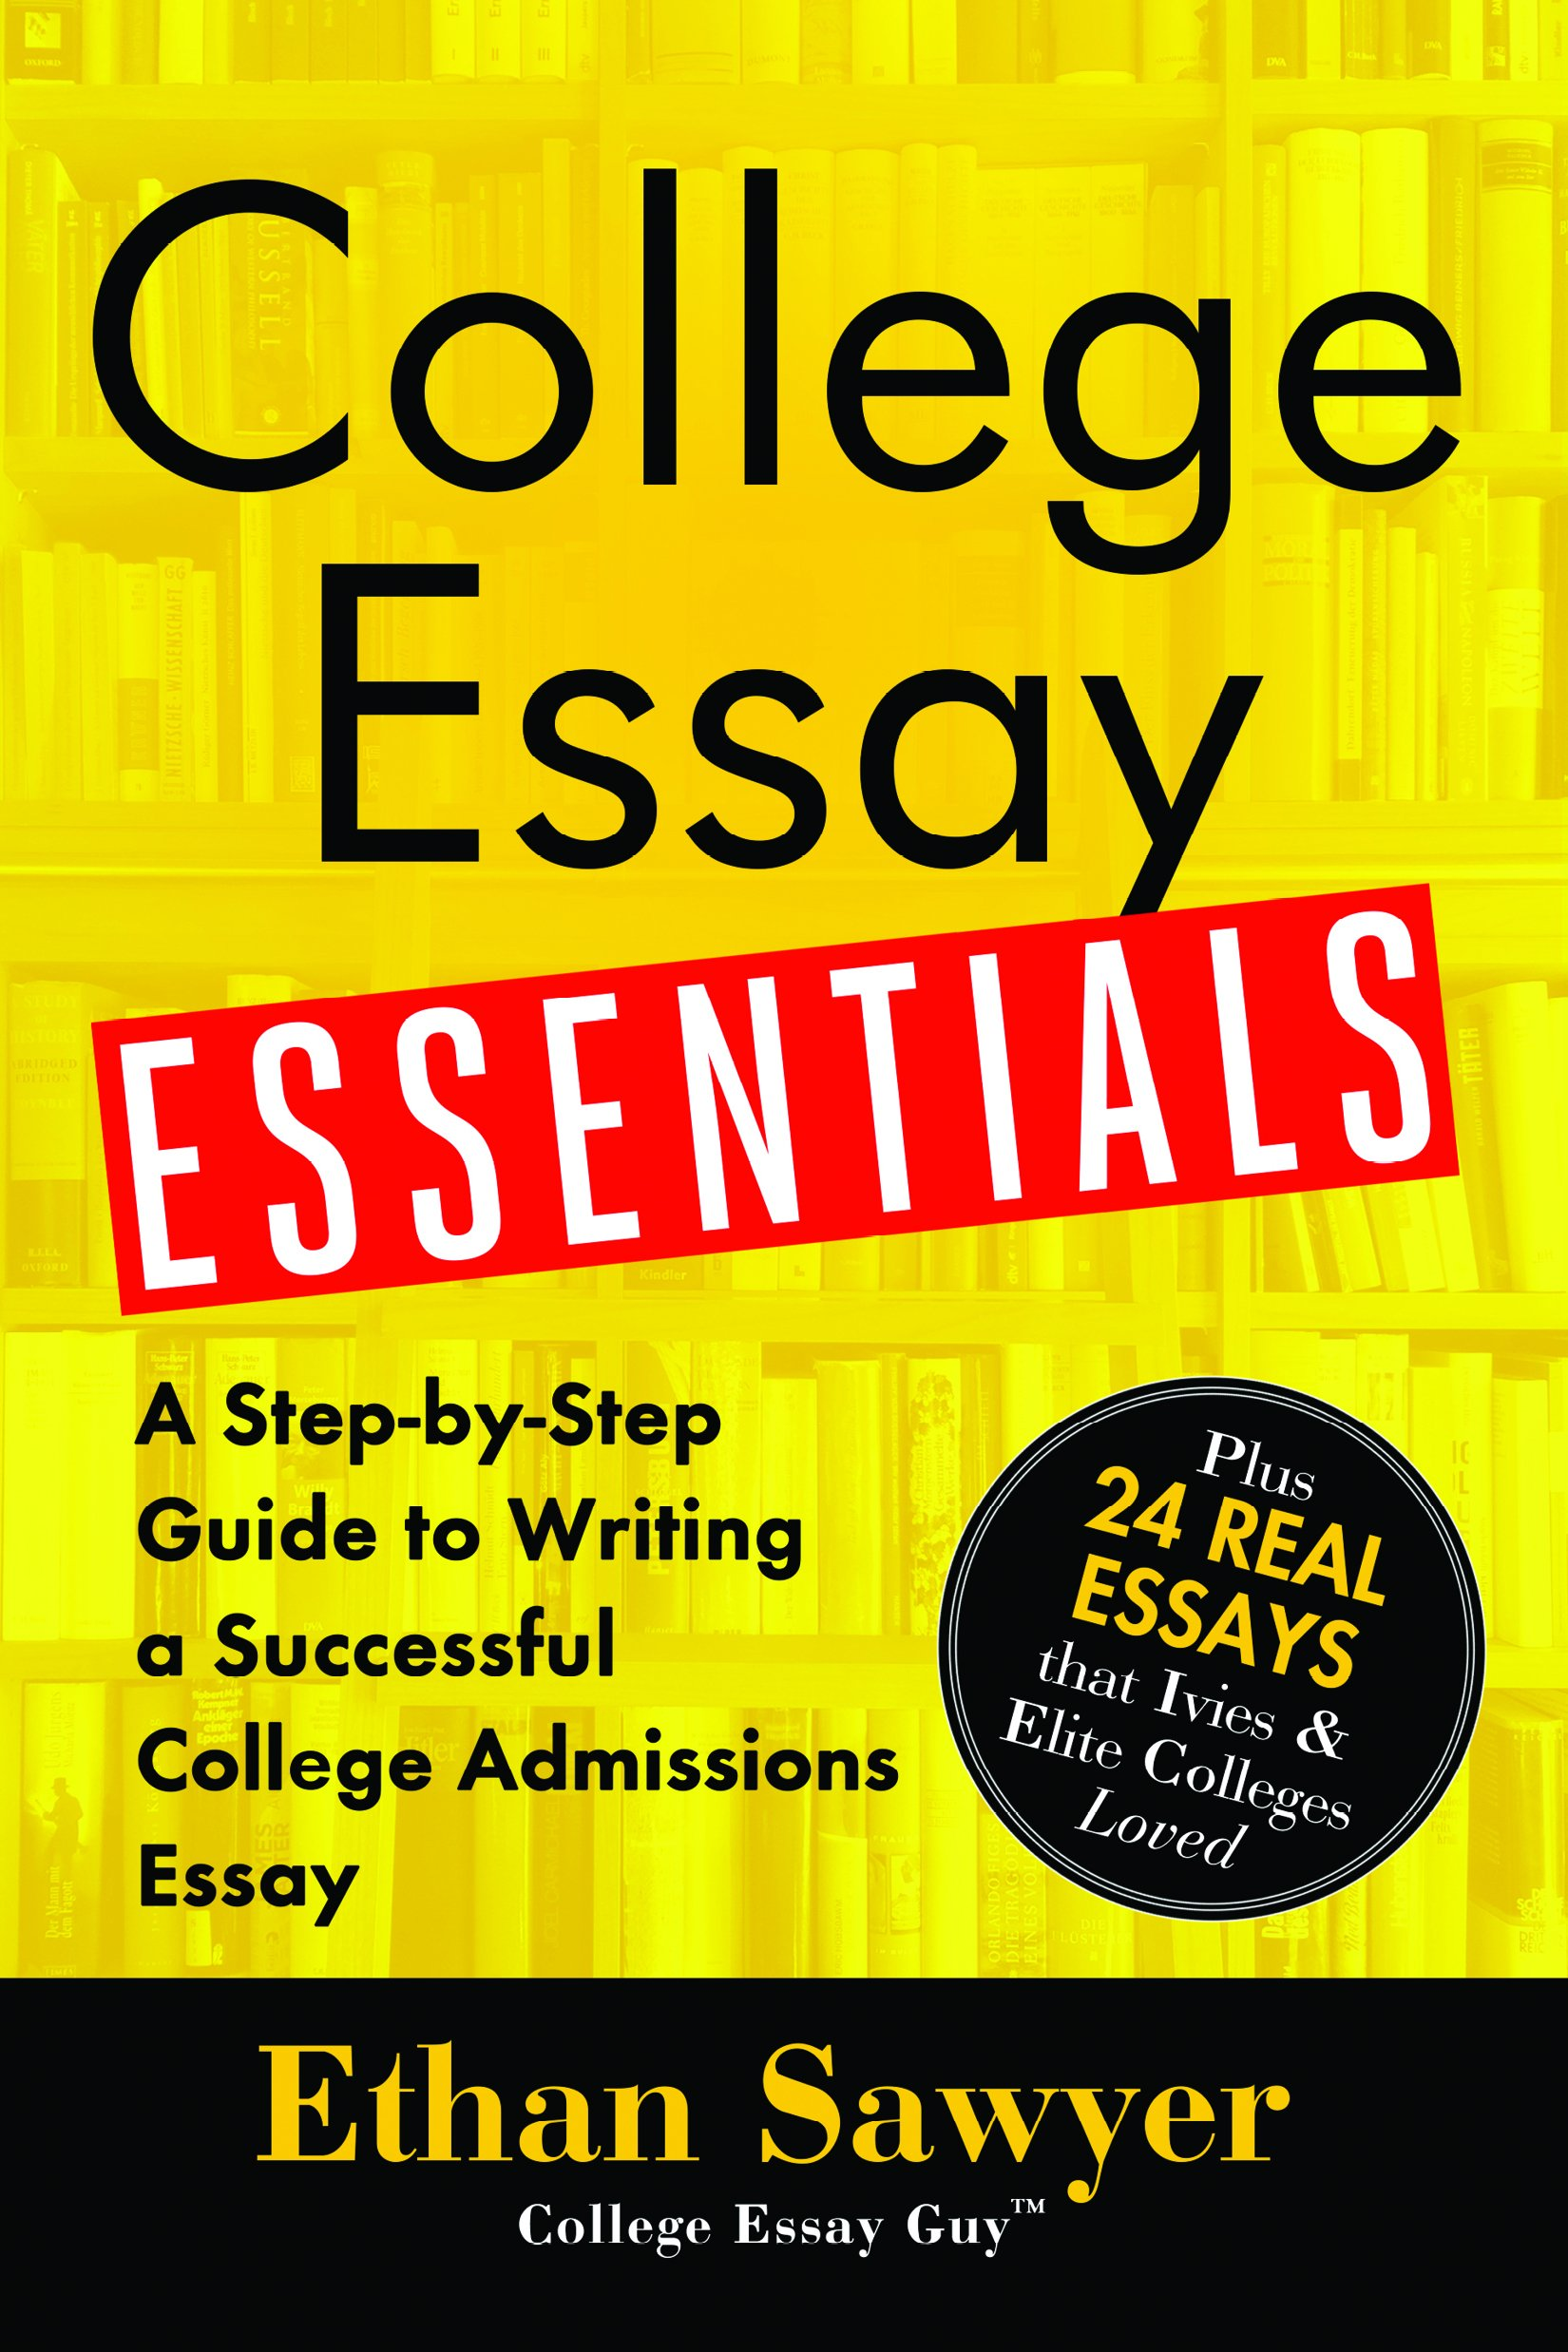 College essay essentials a step by step guide to writing a college essay essentials a step by step guide to writing a successful college admissions essay ethan sawyer 9781492635123 amazon books fandeluxe Images